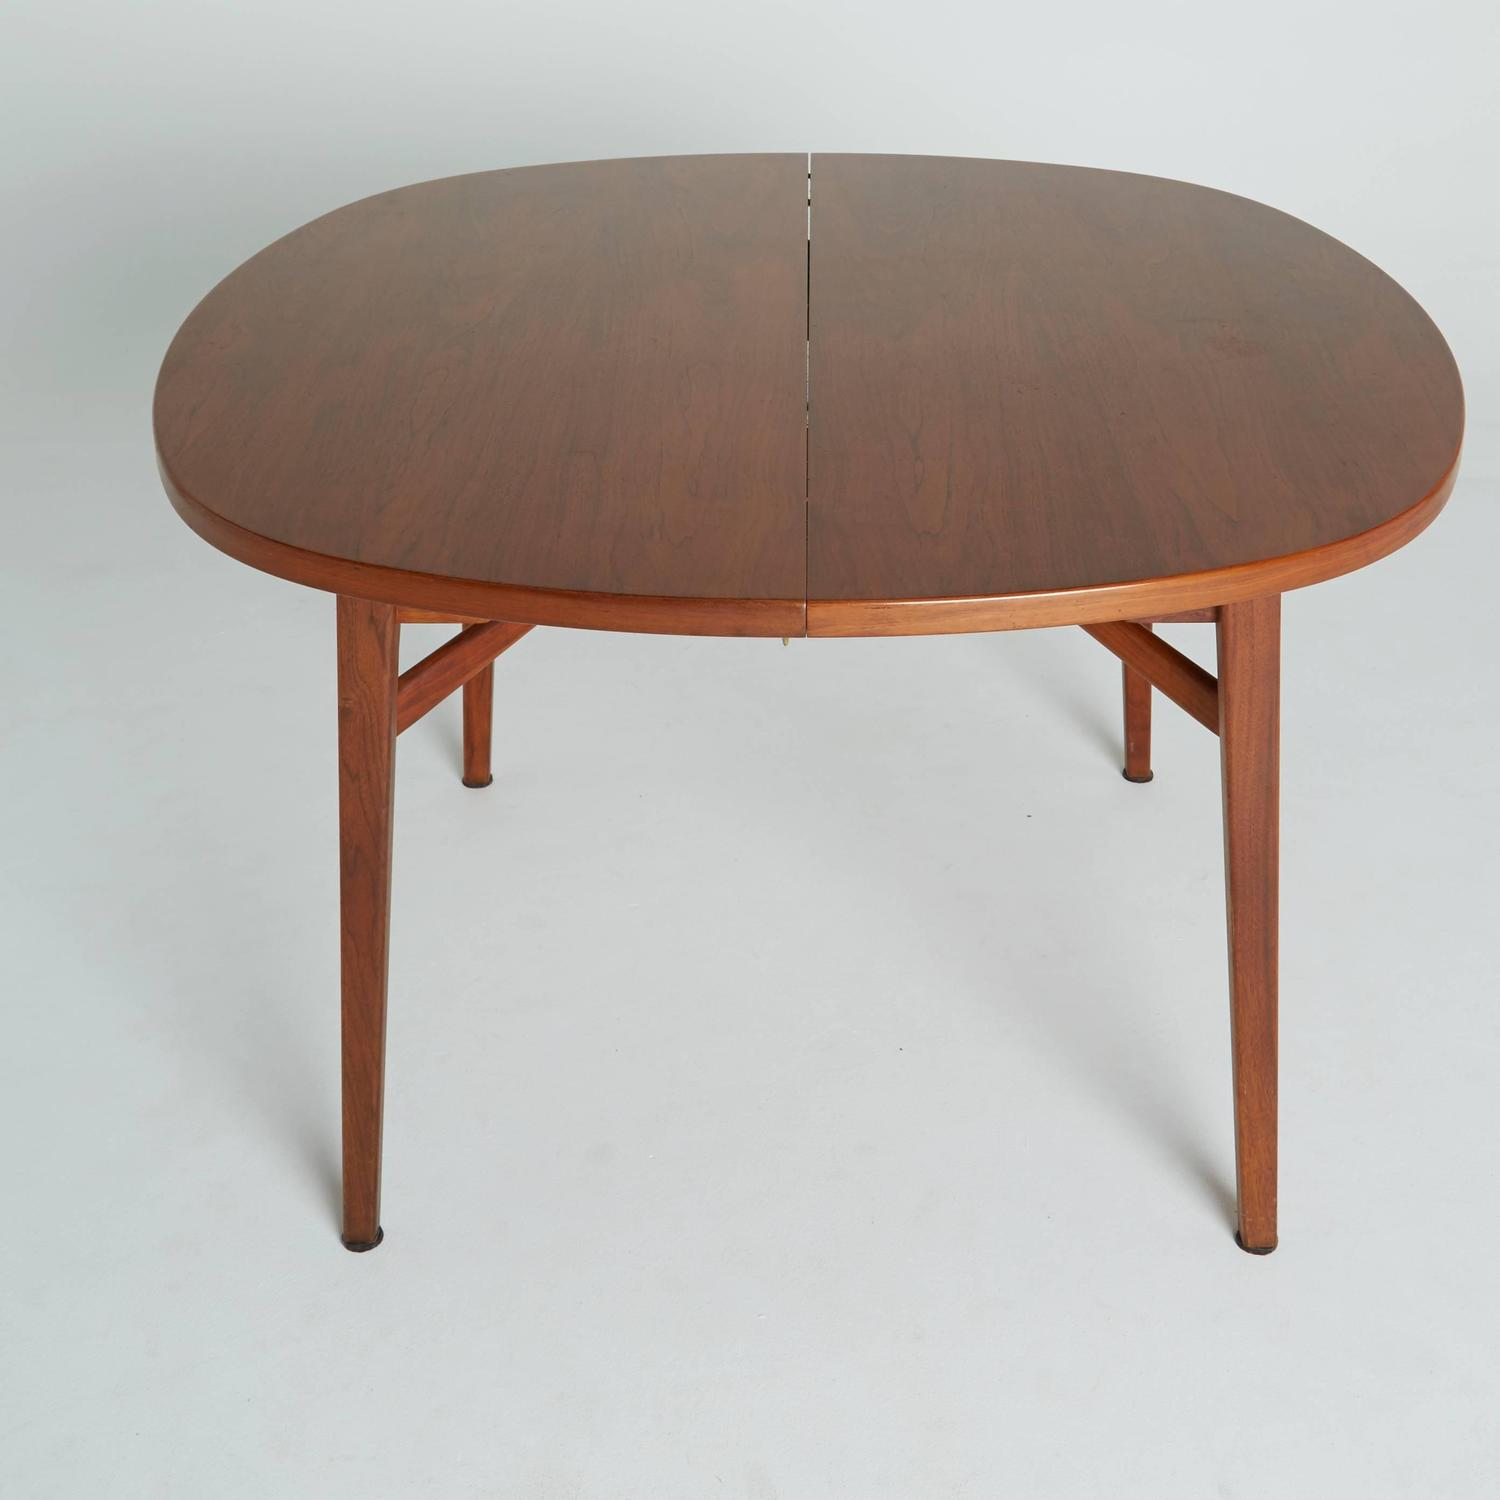 Round Expandable Dining Table By Jens Risom Marked On Sale For Sale